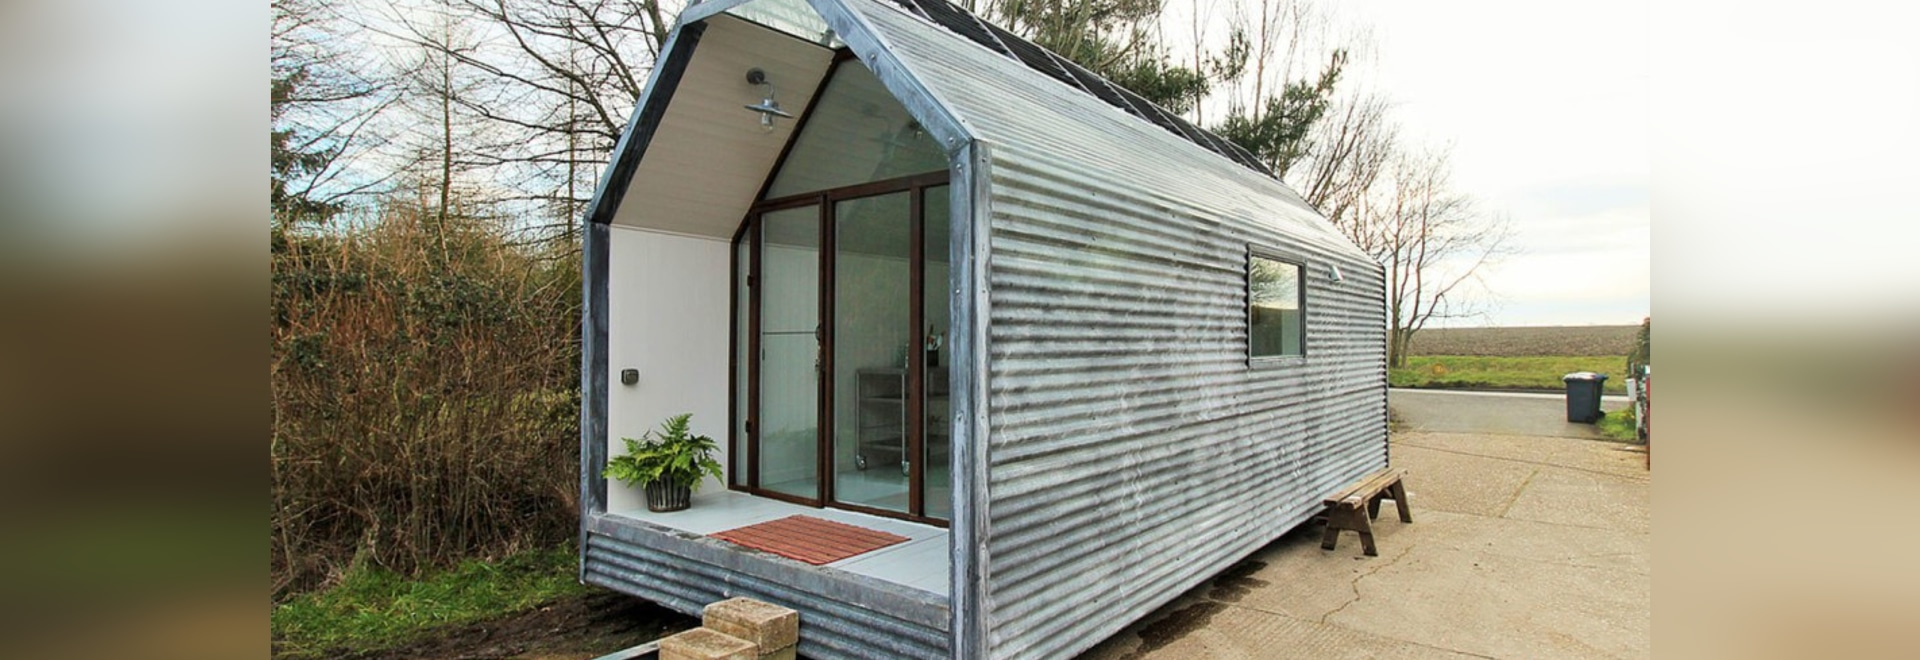 ^ hese amazing, affordable modern shepherd huts can be moved ...